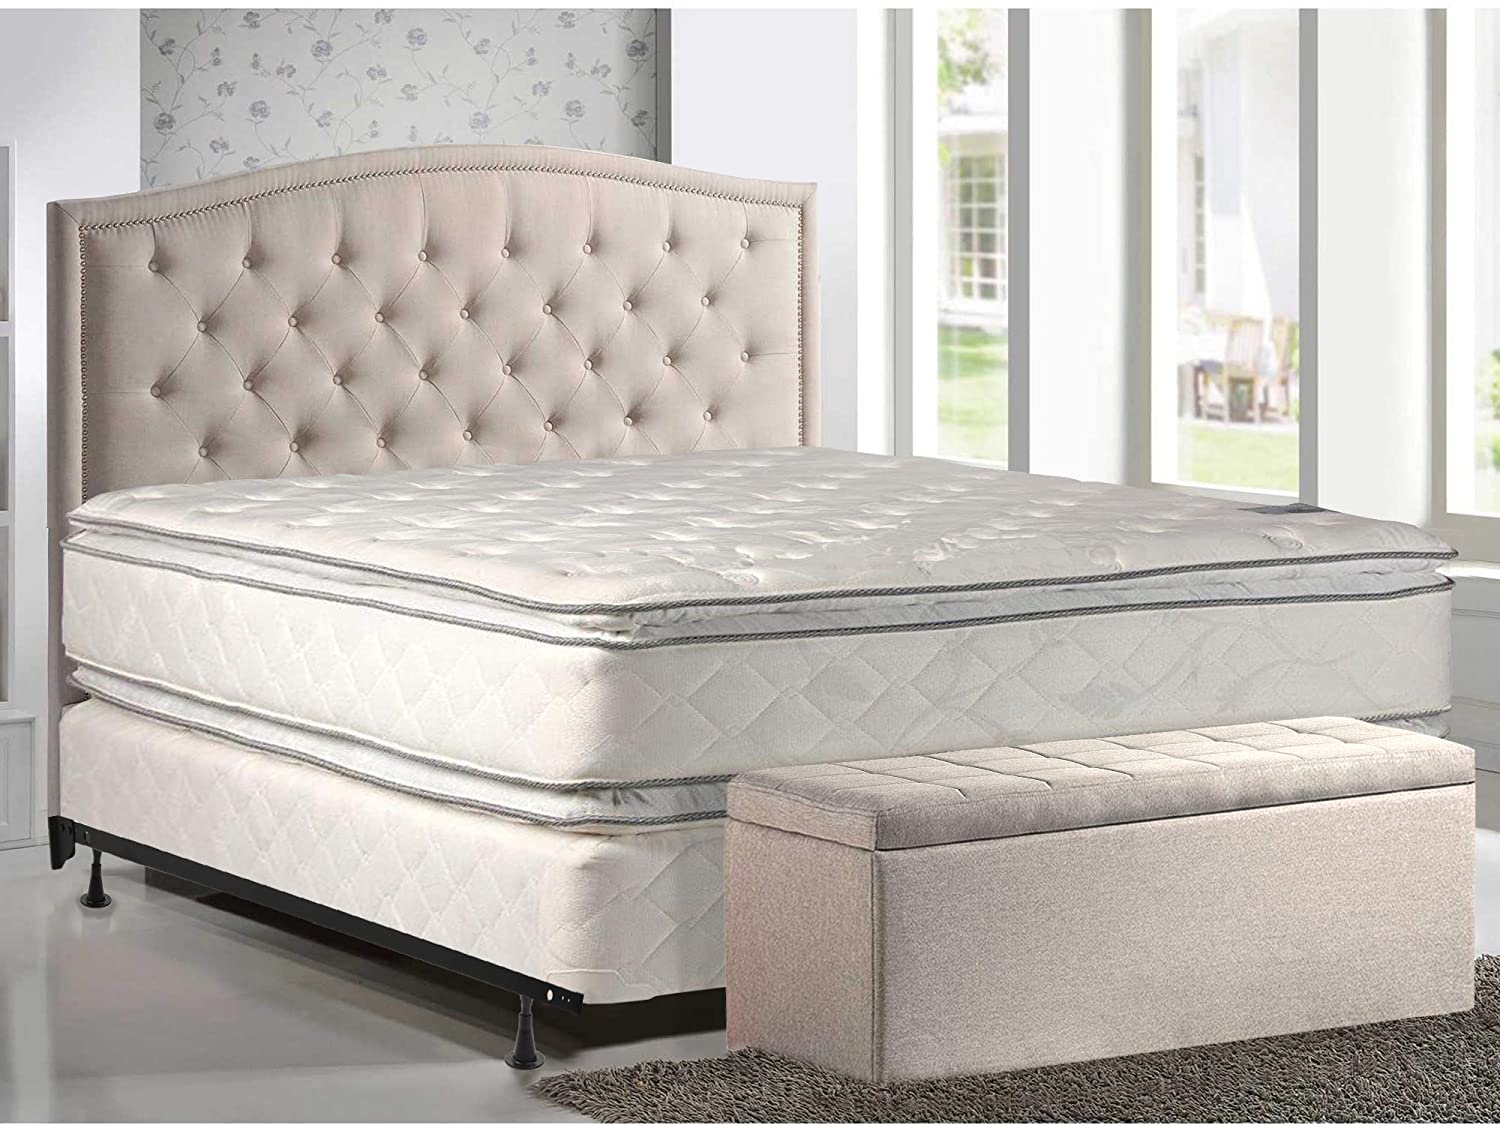 Mattress Solution 302yF-4/6XL-2LPS 12 Plush Pillowtop, Orthopedic Doublesided Mattress and 4 Split Box Spring/Foundation Set with Frame, Princess Collection, Full XL, Size